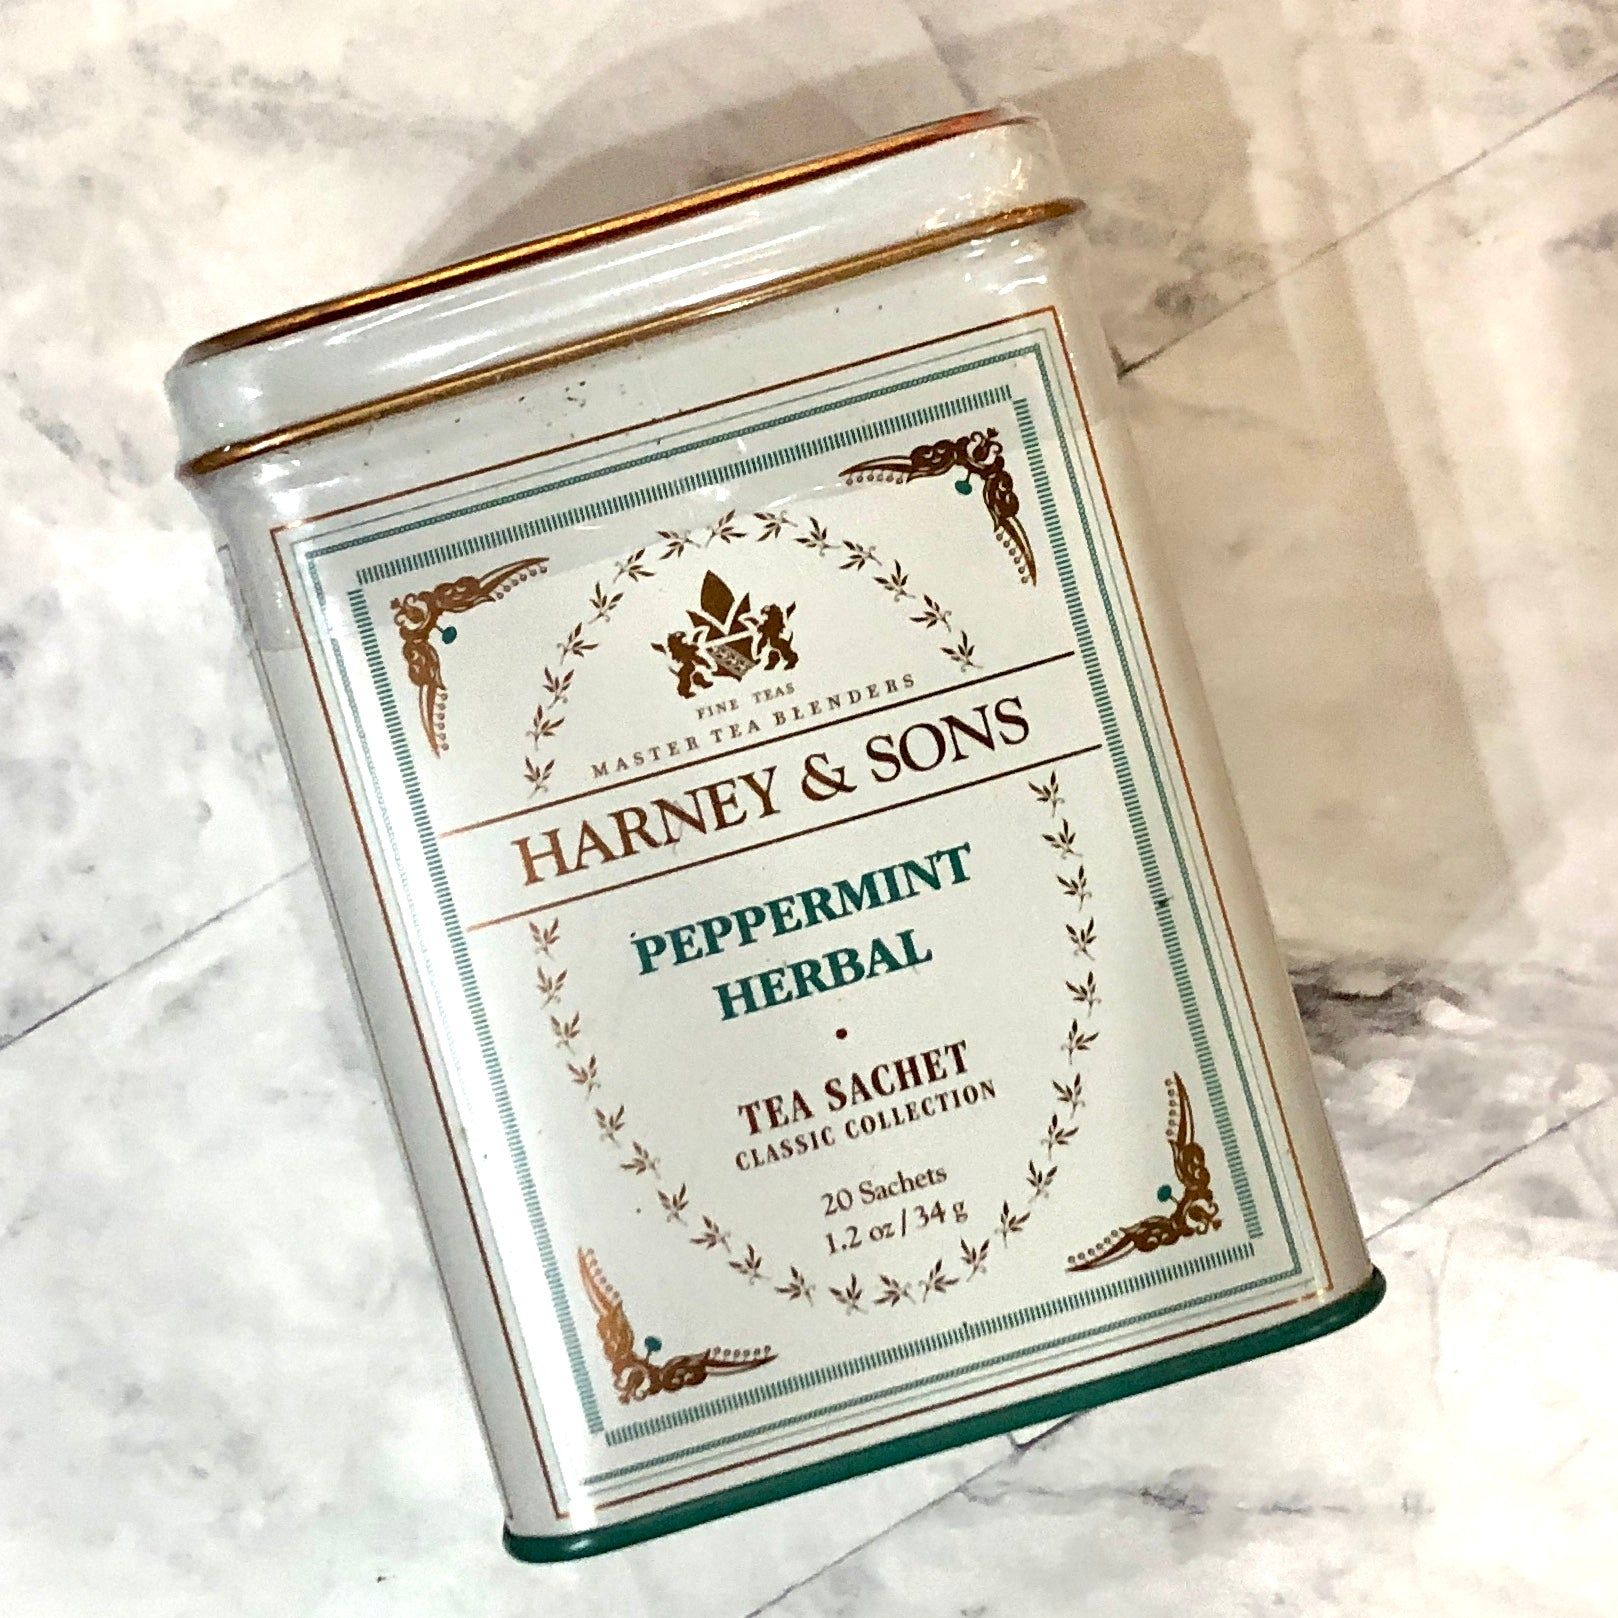 Harney & Sons Tea / Peppermint